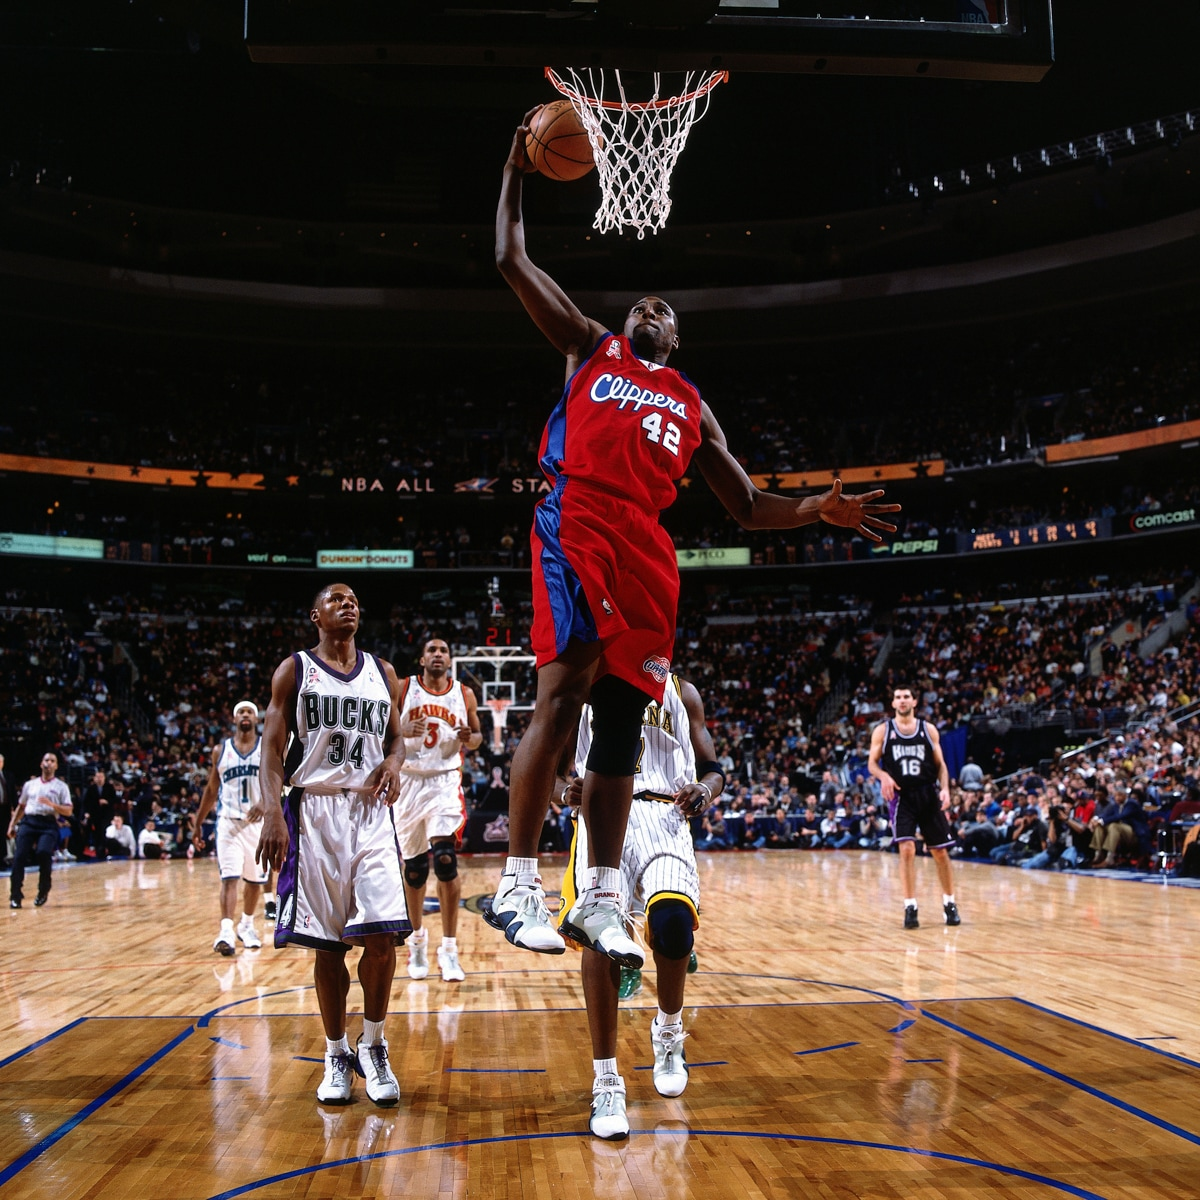 Remembering EB: Former Clippers Star Elton Brand Retires | LA Clippers